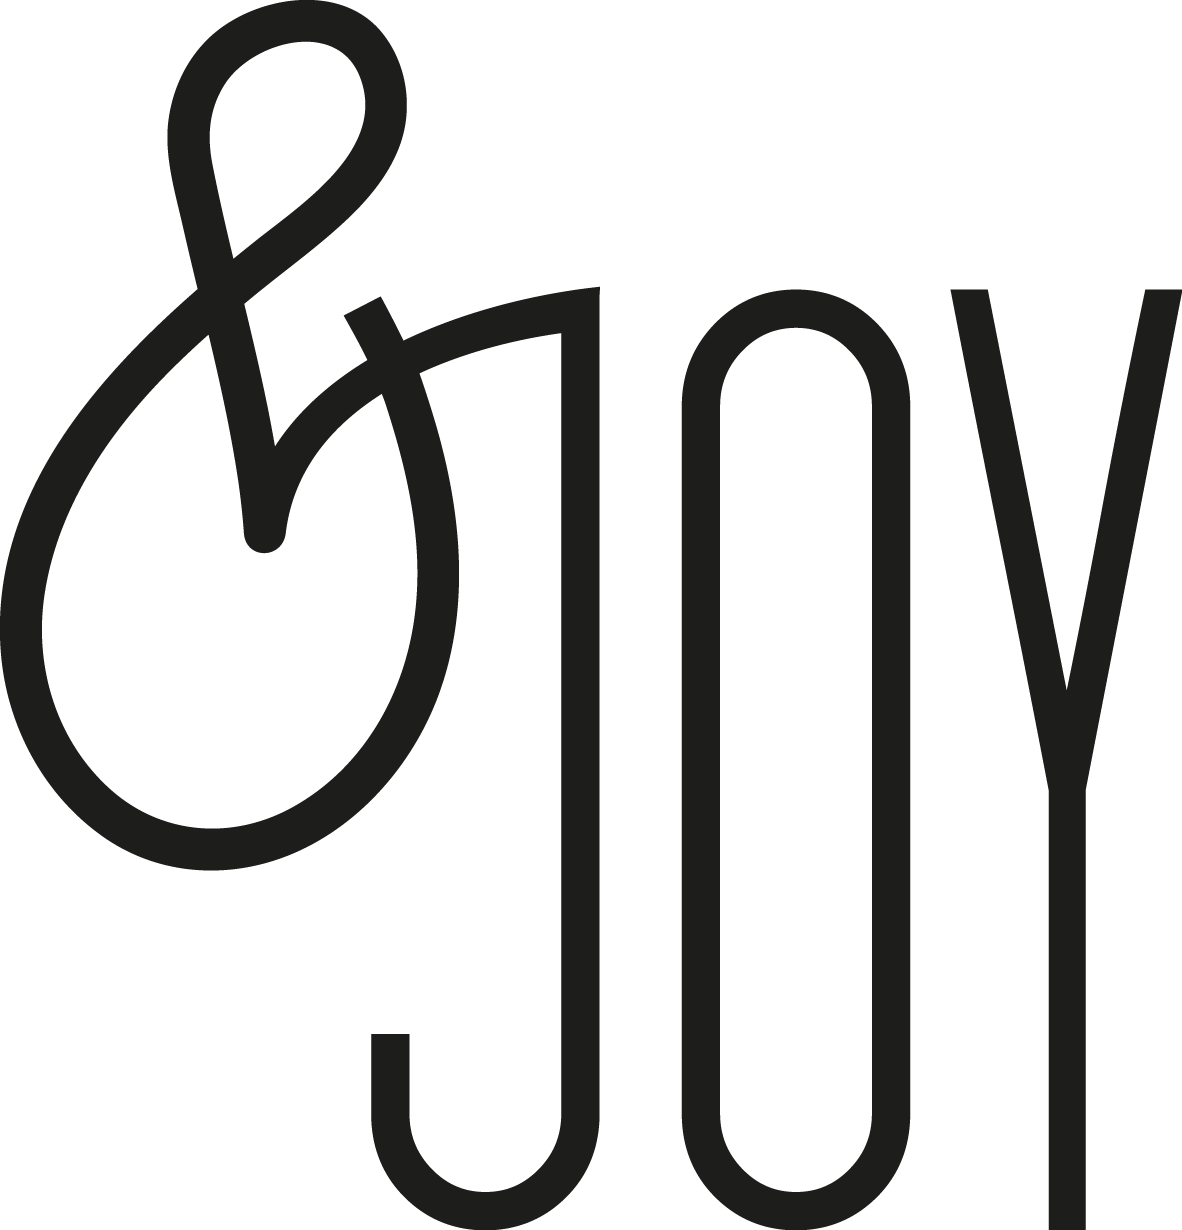 JOY titel logo corporate